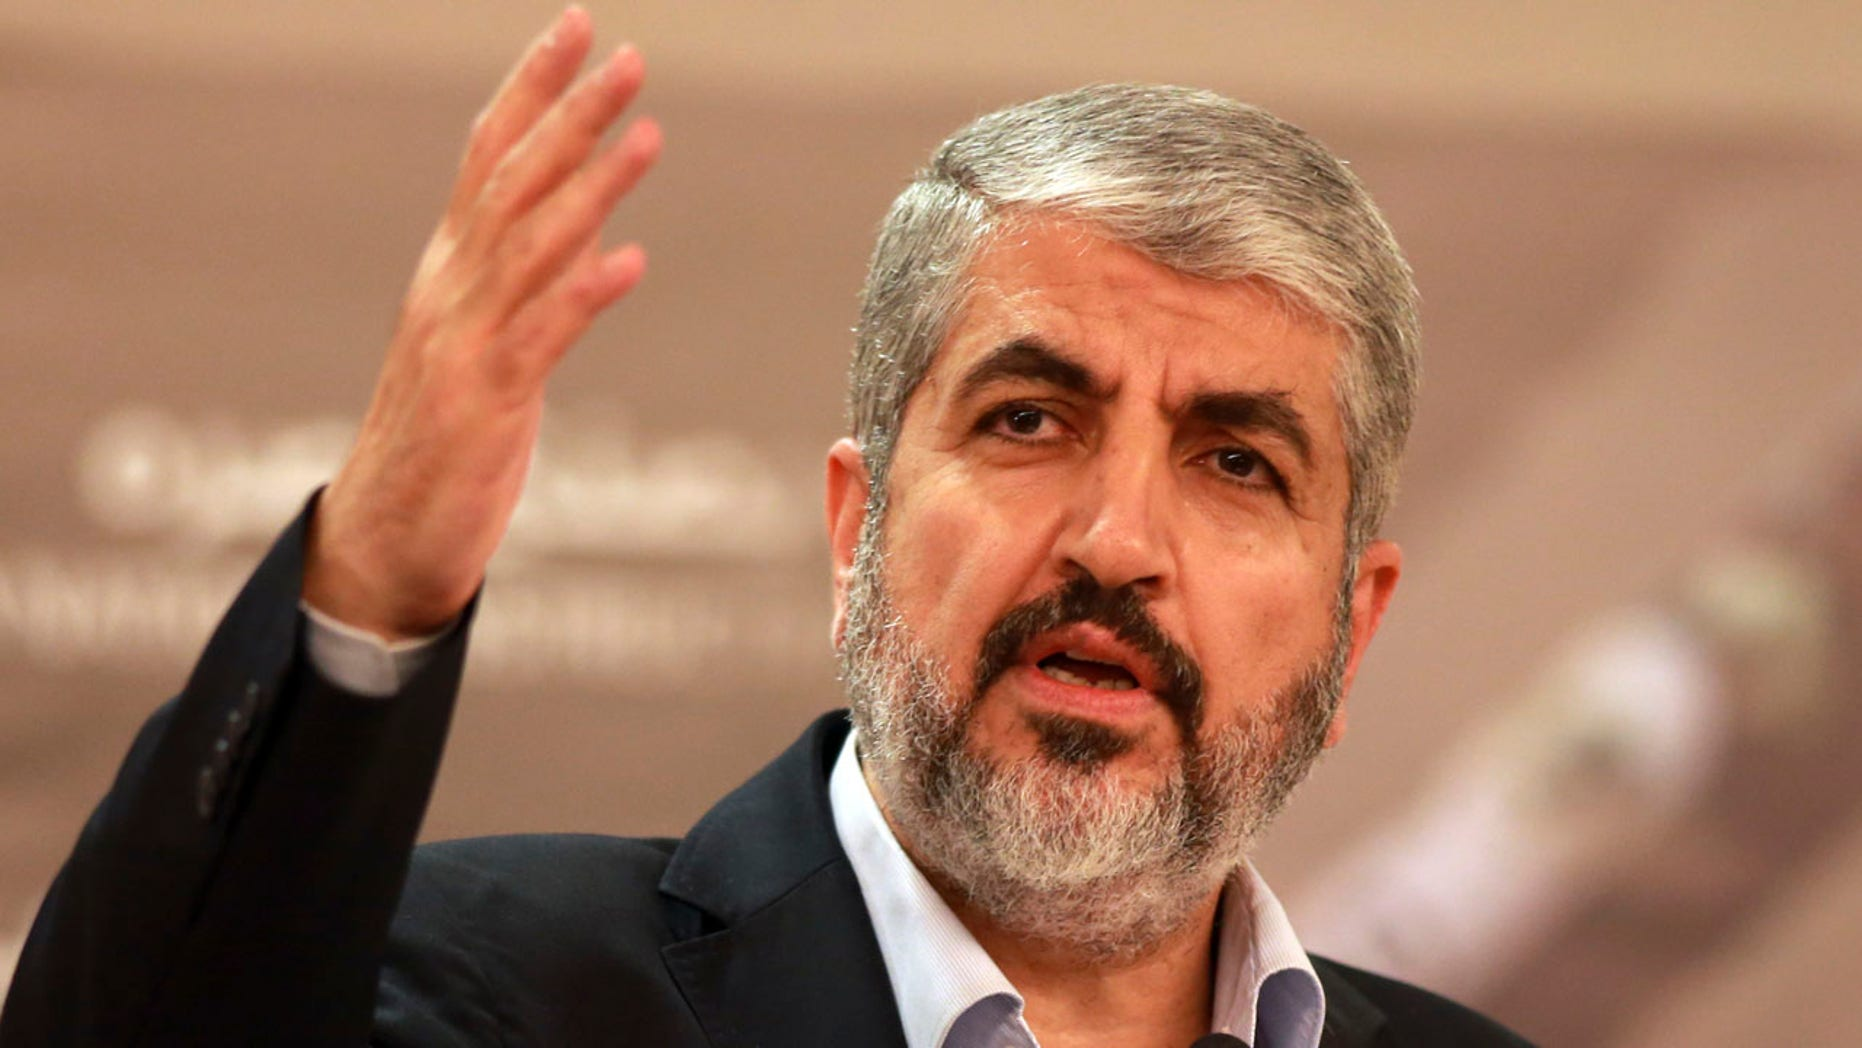 In this Aug. 28, 2014, file photo, Khaled Mashaal leader of the Palestinian Islamic militant movement Hamas, that has governed Gaza since a 2007 takeover, speaks during a speech held in Katara in Doha, Qatar.